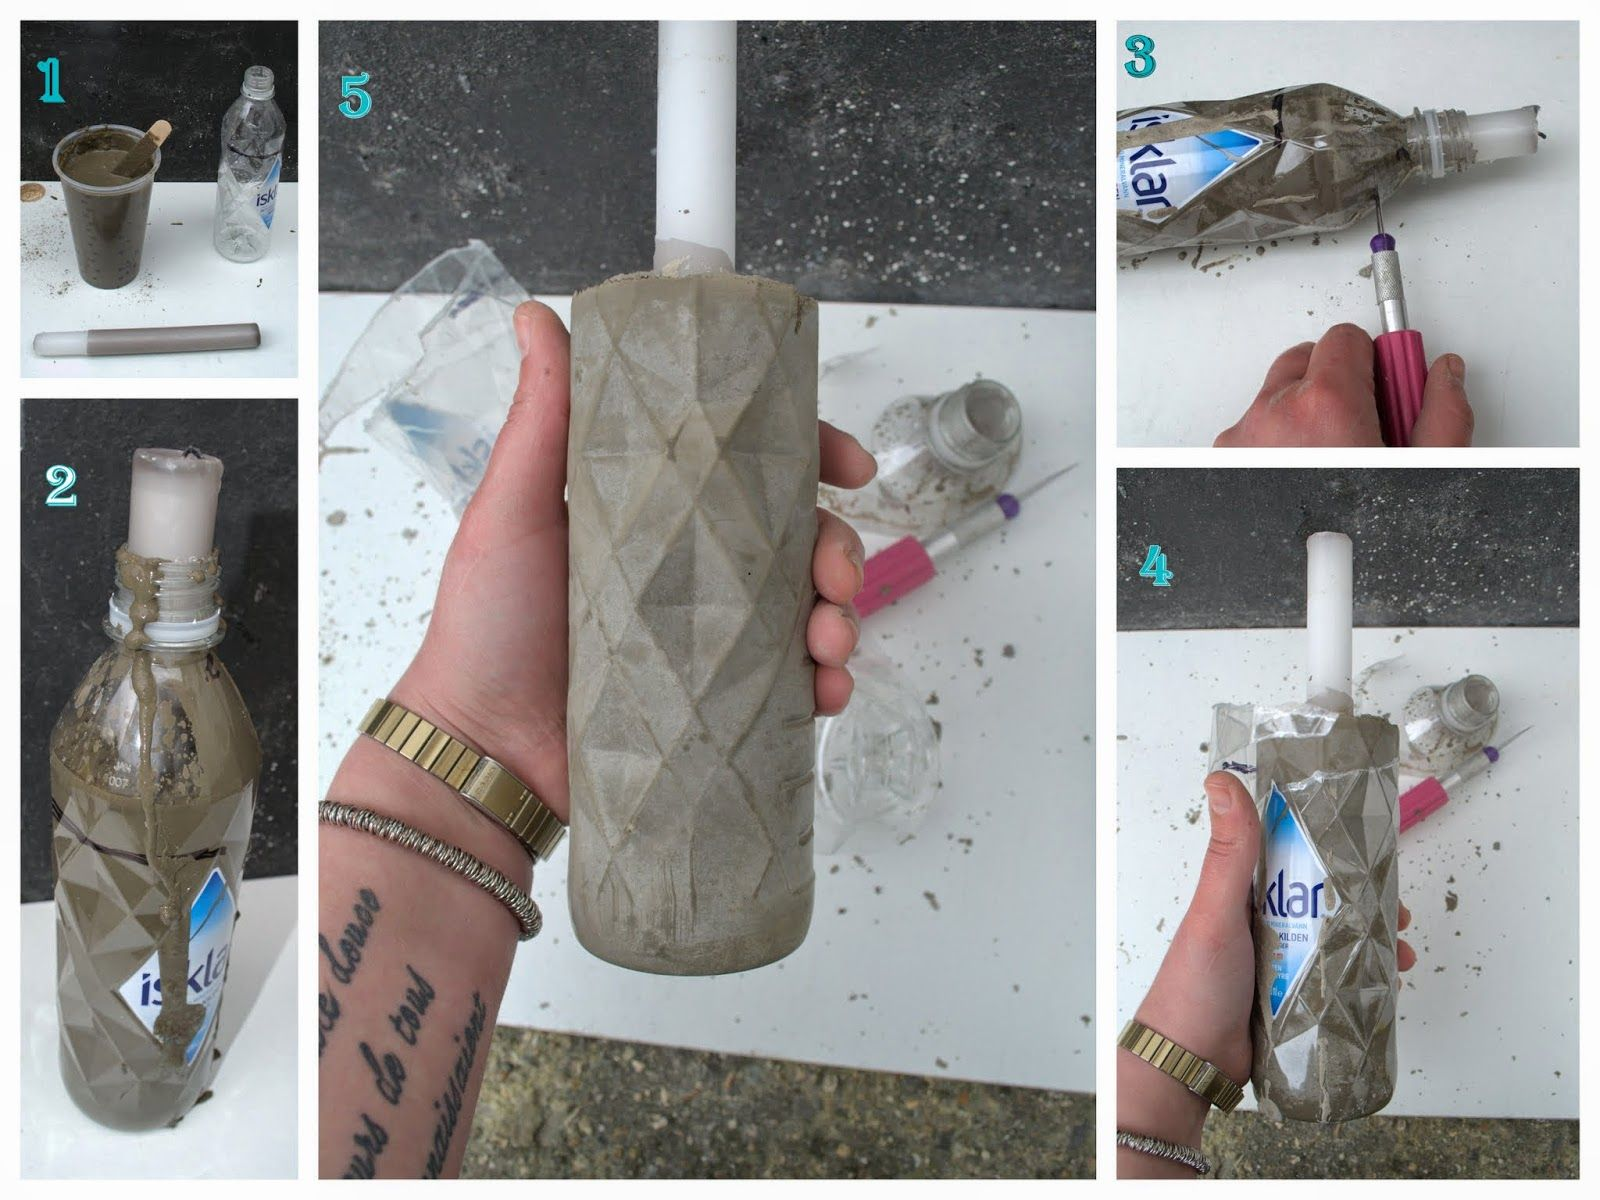 nostalgiecat: Concrete vase DIY...from a plastic bottle #vaseideen